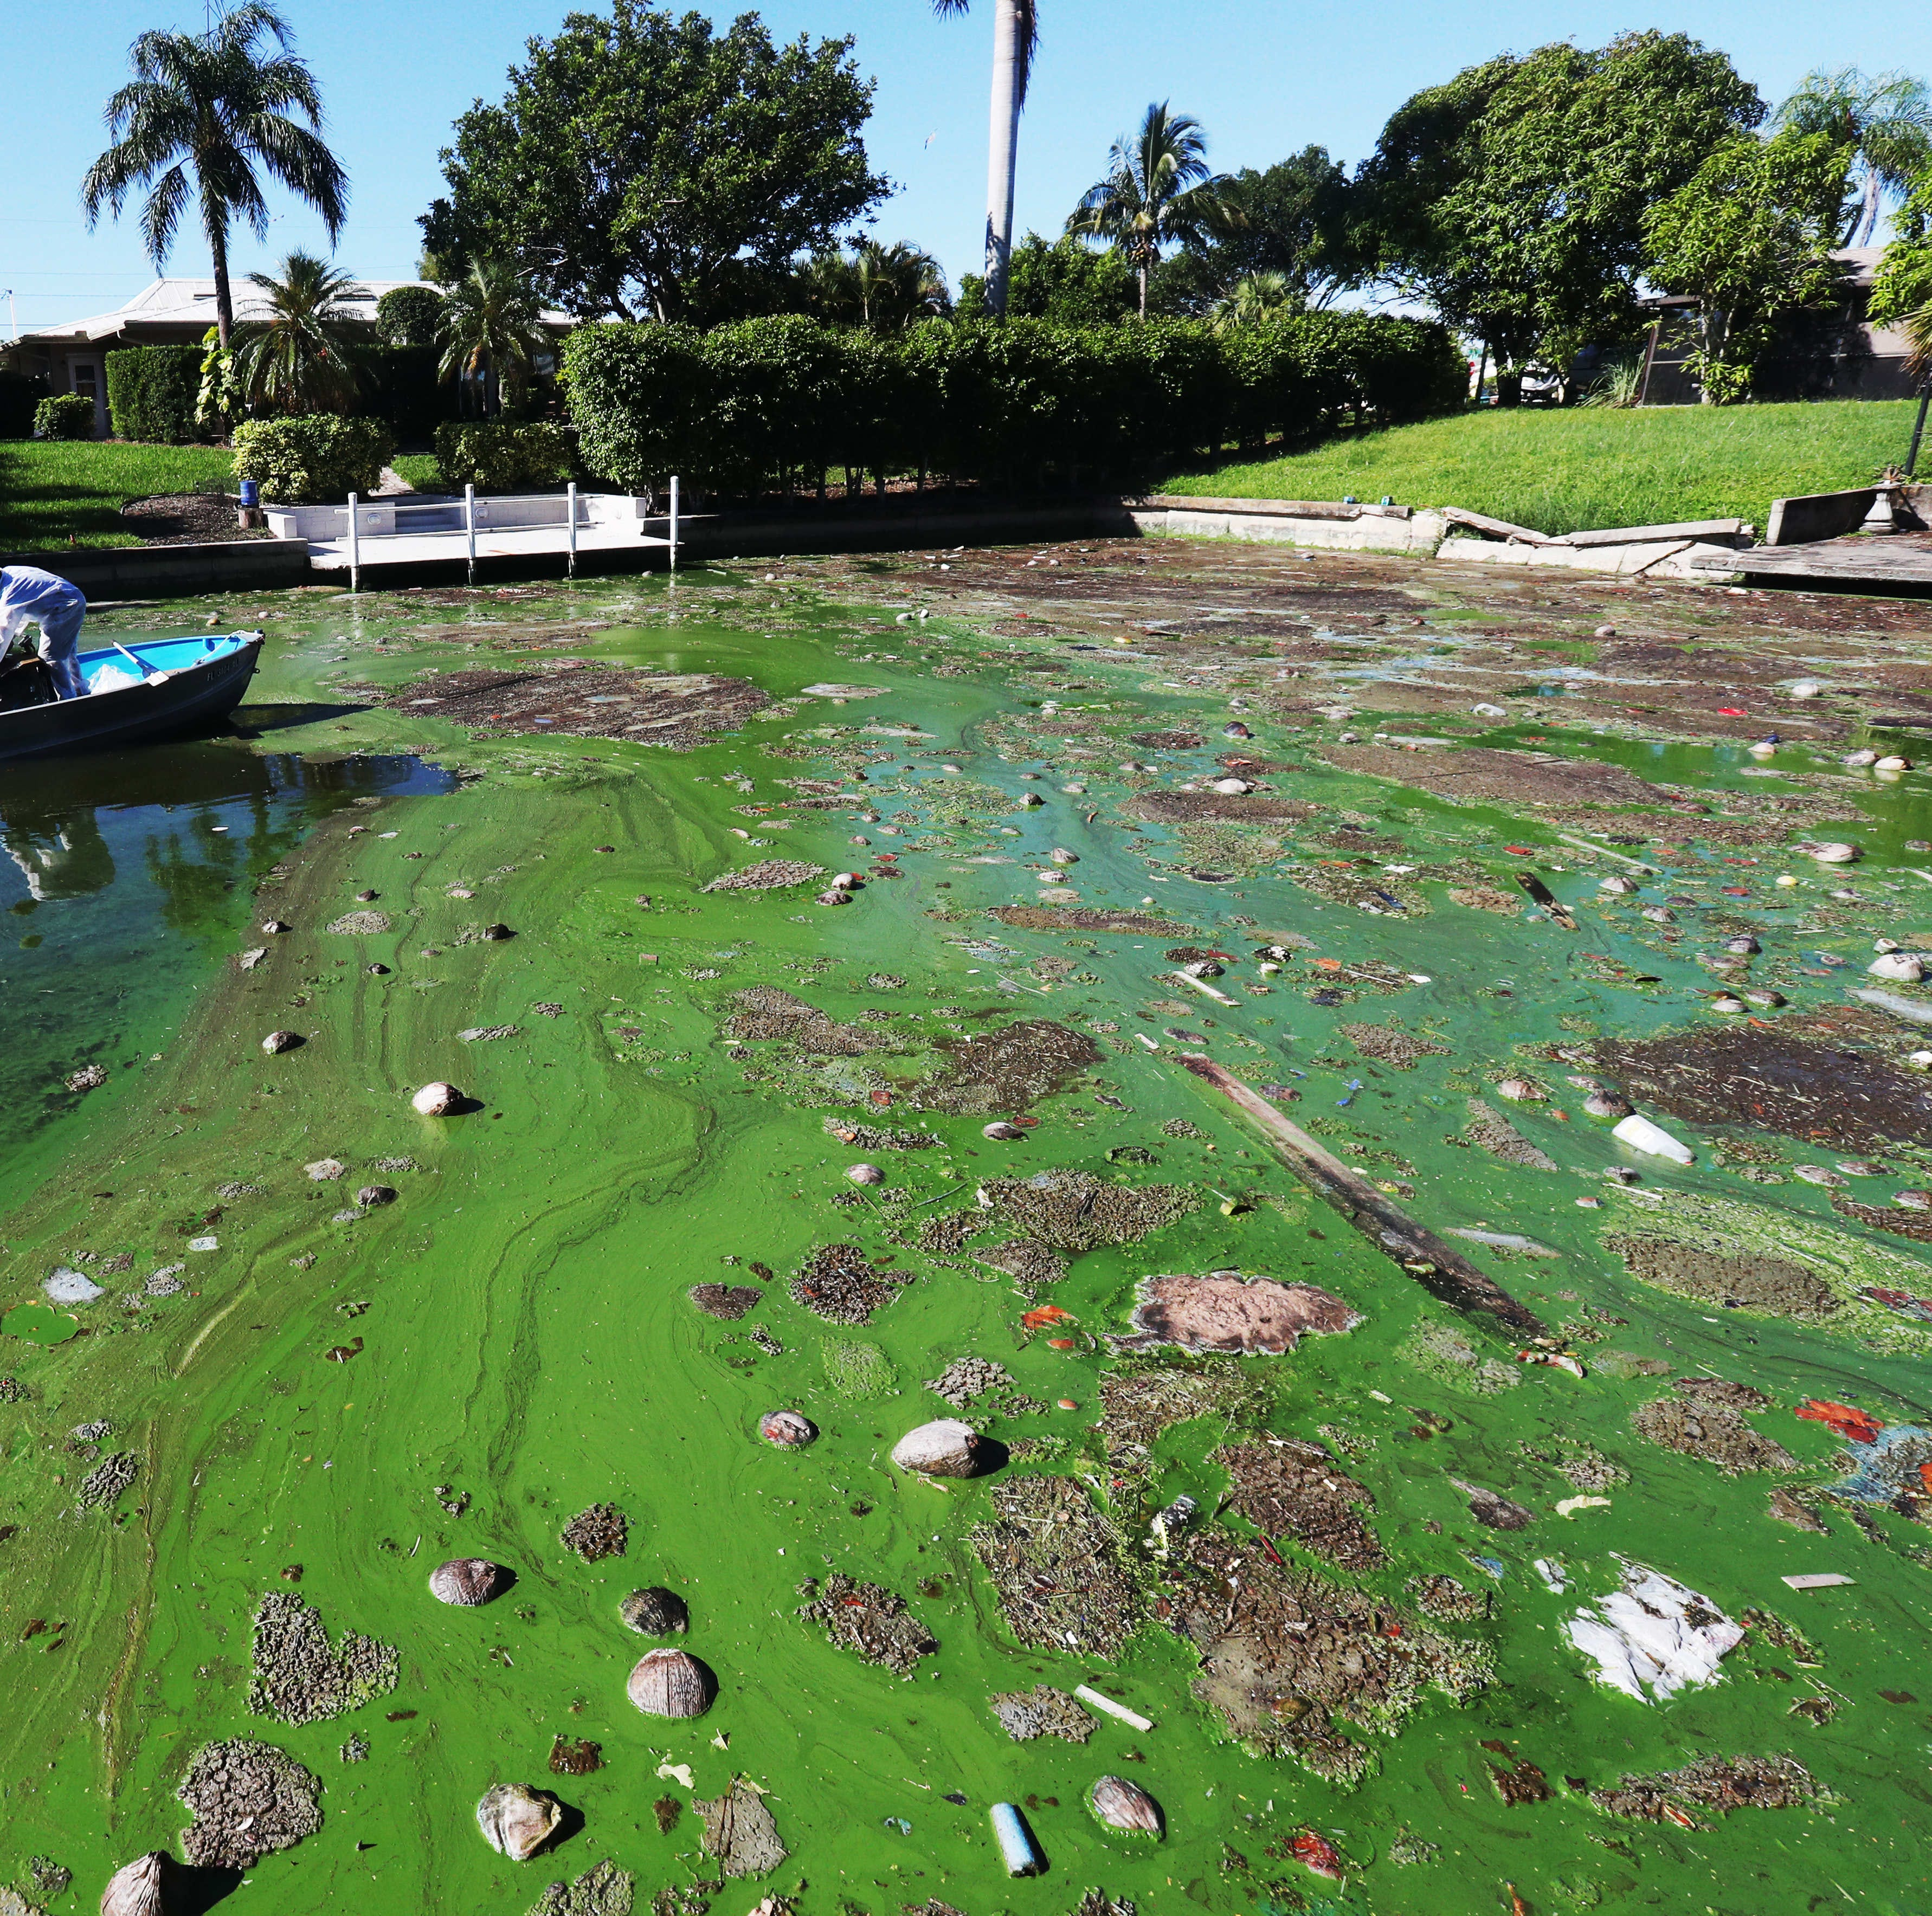 Algae crisis: Airborne particles of toxic cyanobacteria can travel more than a mile inland, new FGCU study shows